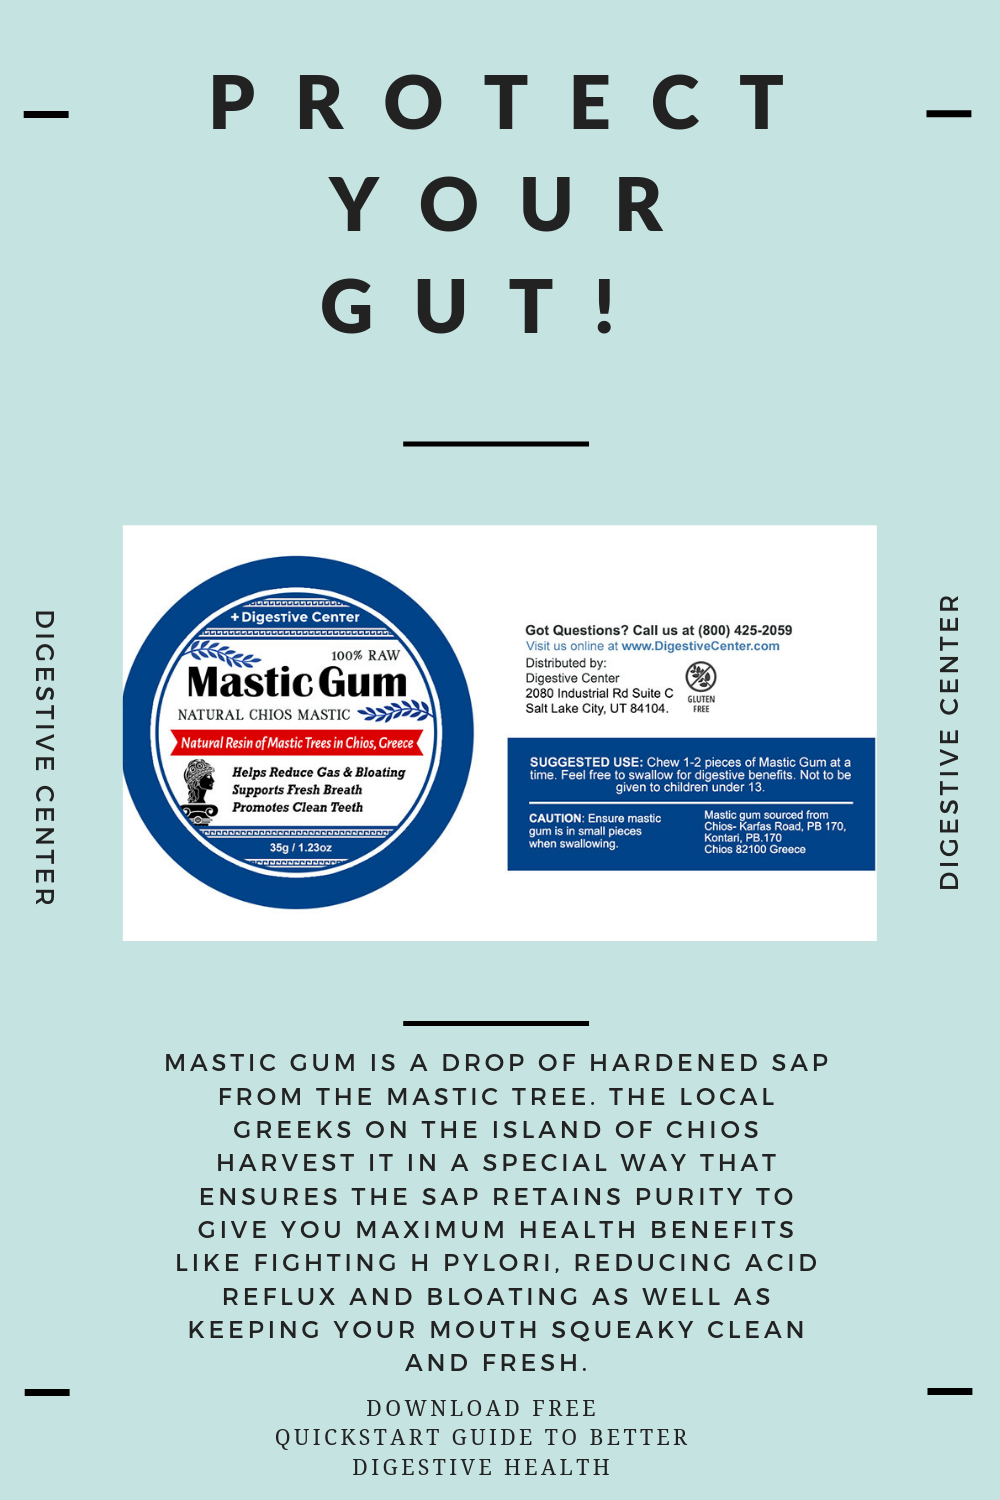 The 100% Raw Mastic Gum from the Digestive Center helps ...